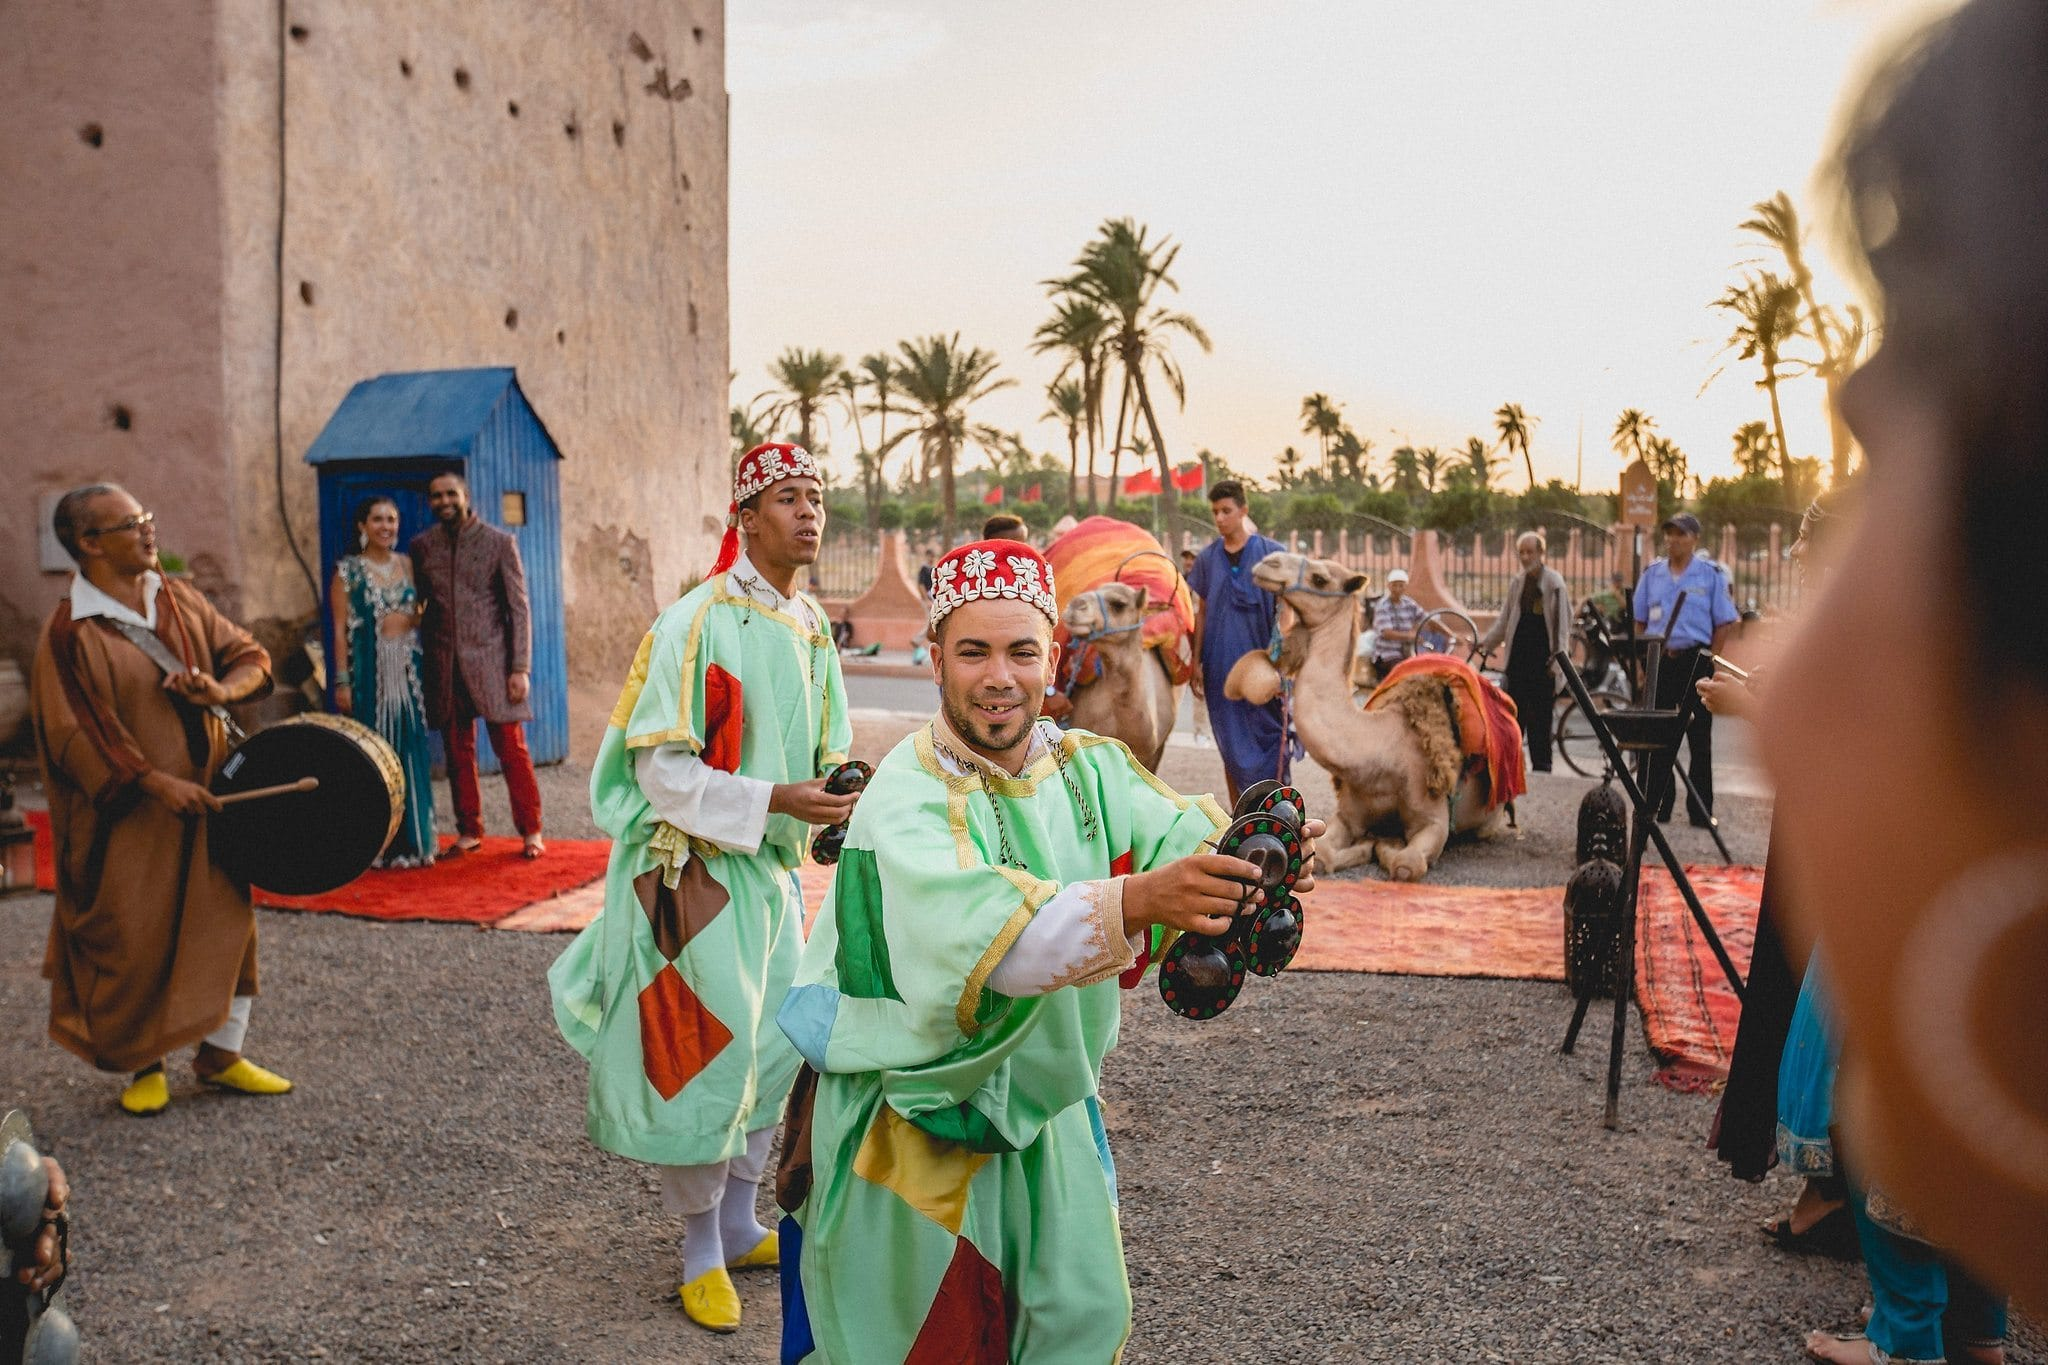 Moroccan musicians dance and play instruments as wedding guests arrive